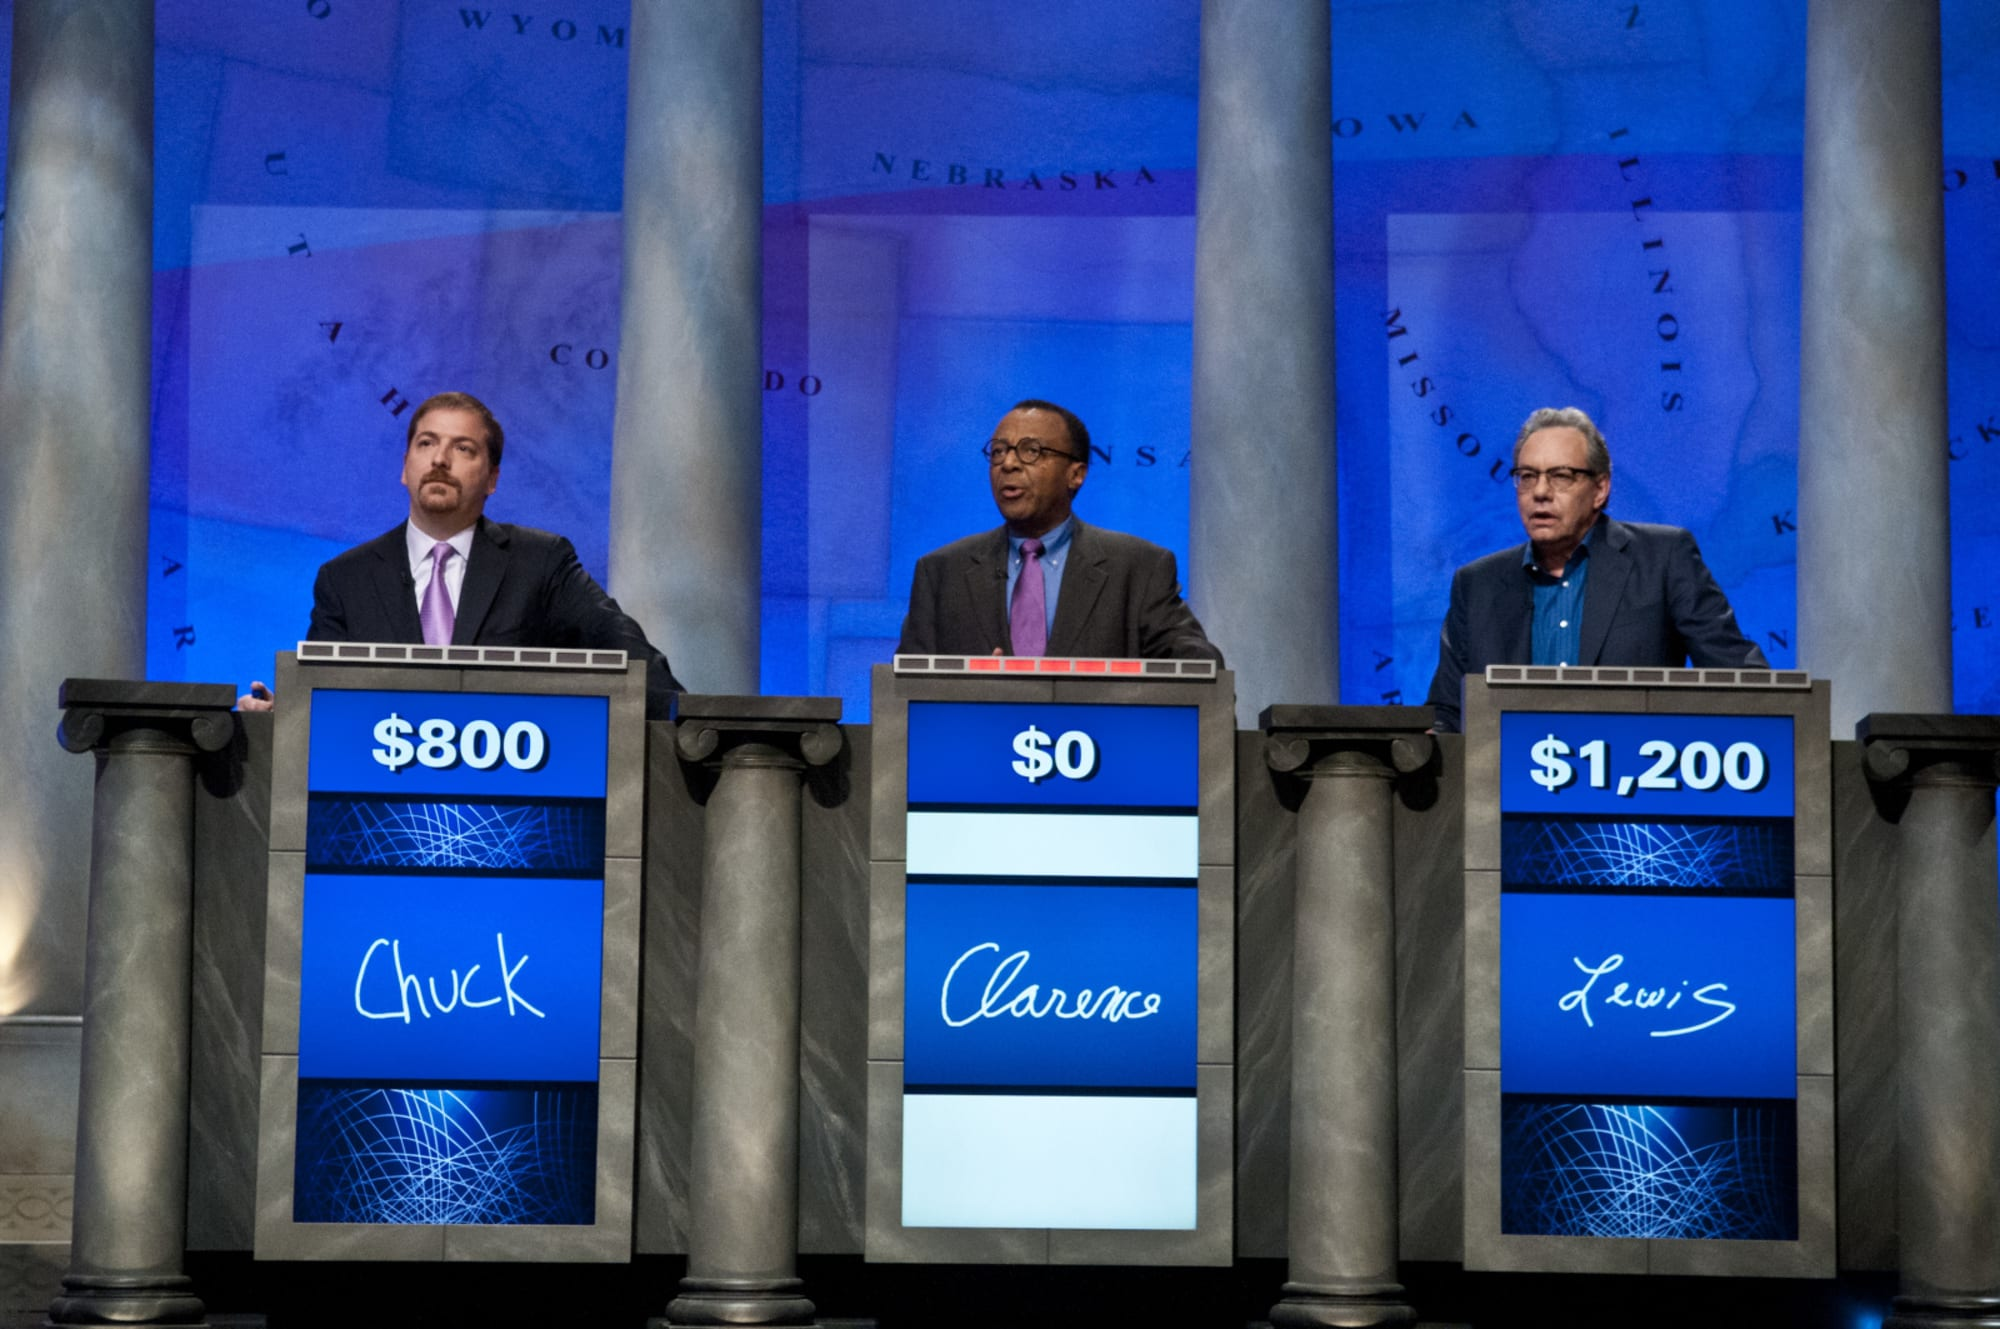 Relive another time on Jeopardy! when Star Trek: Voyager was featured